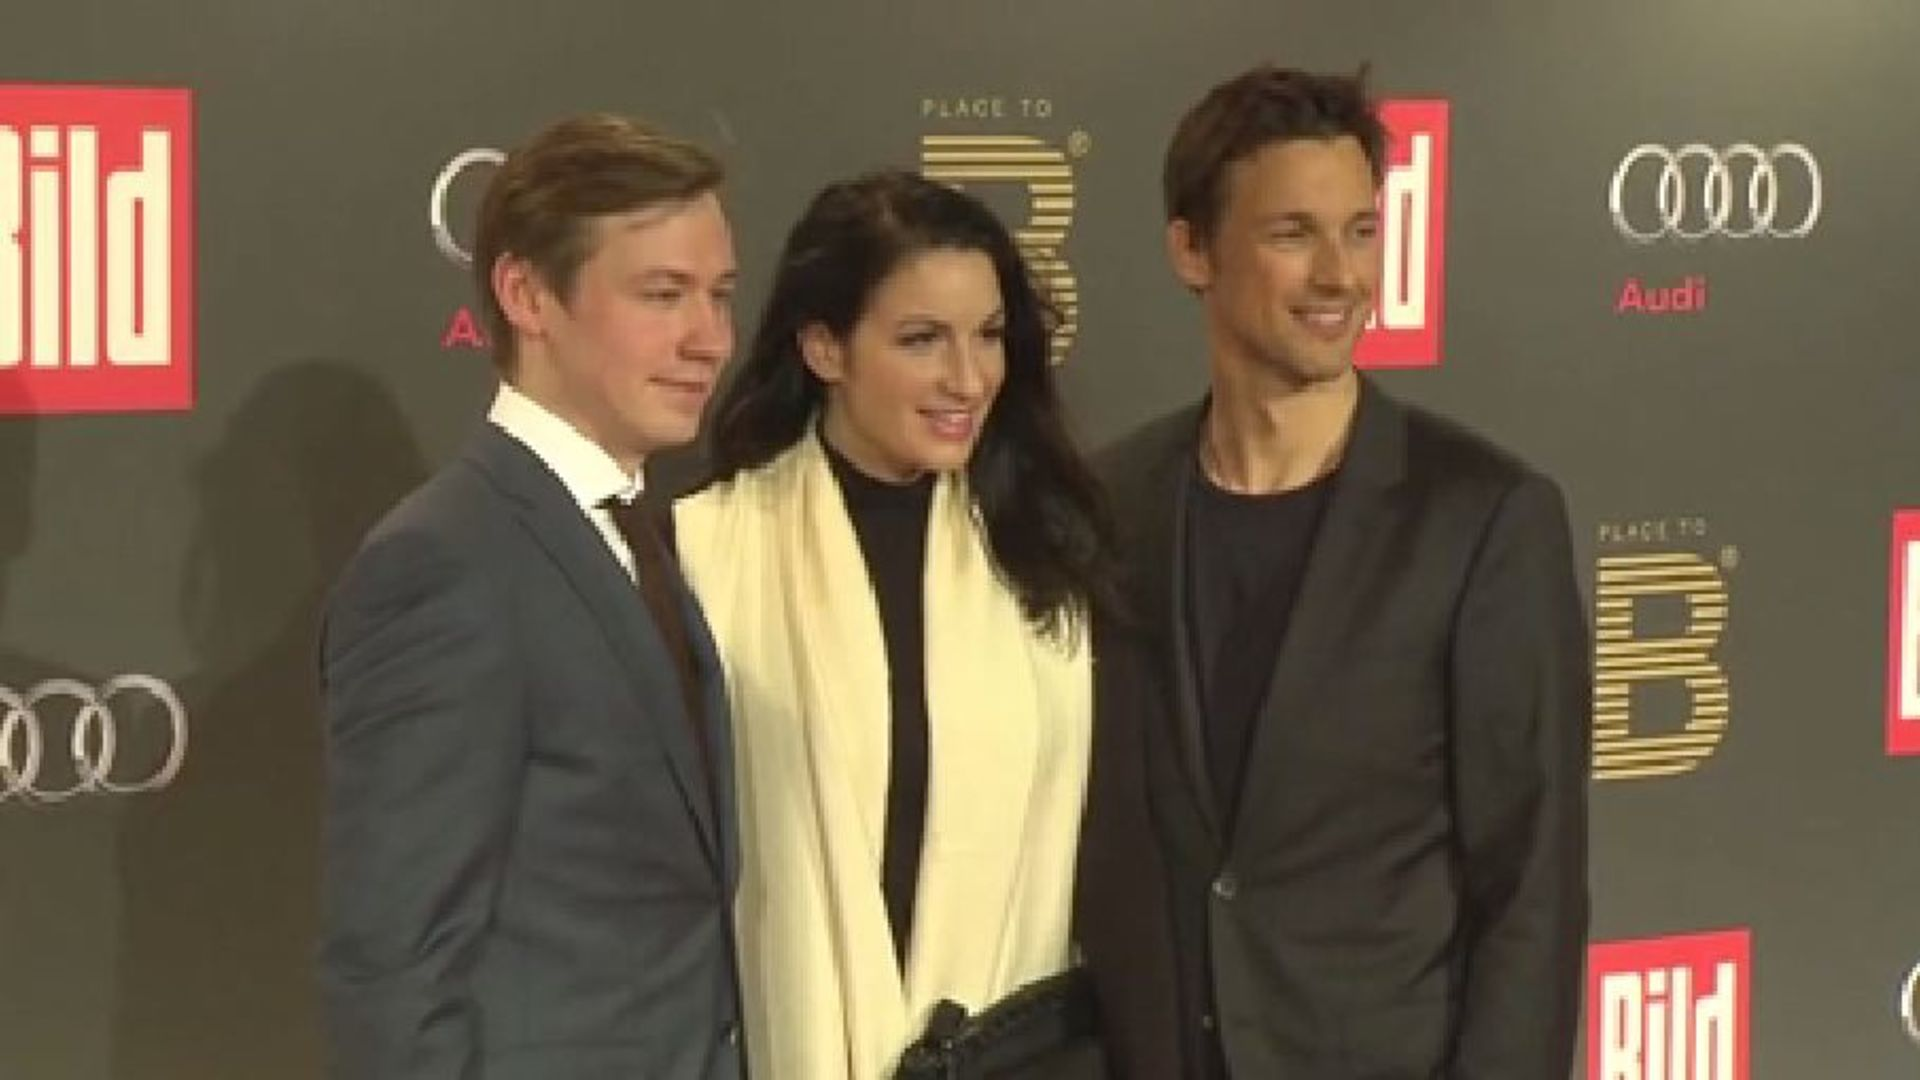 Berlinale 2015: Bild Place to B Party